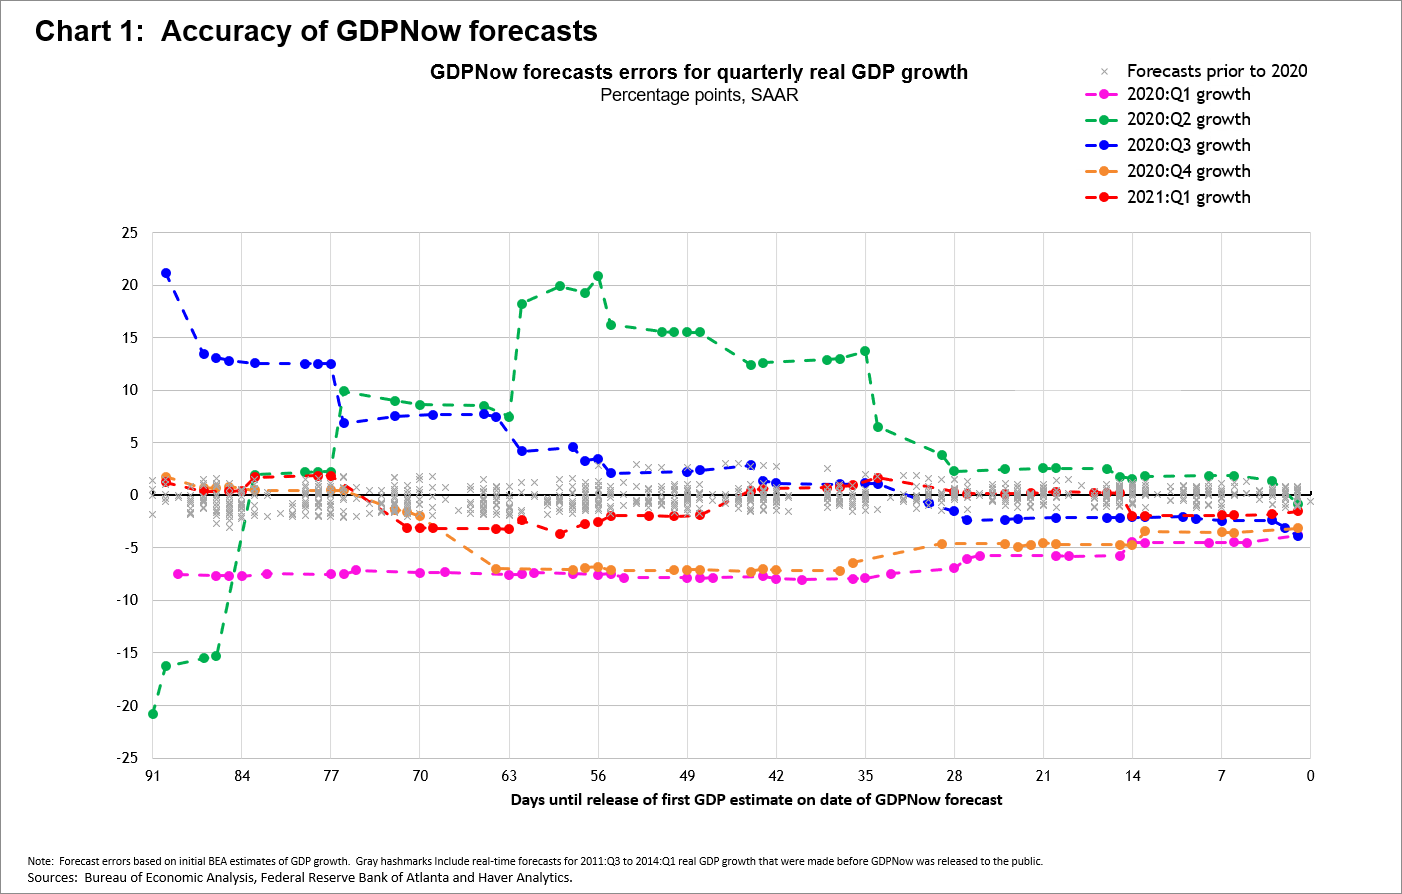 Chart 1: Accuracy of GDPNow Forecasts